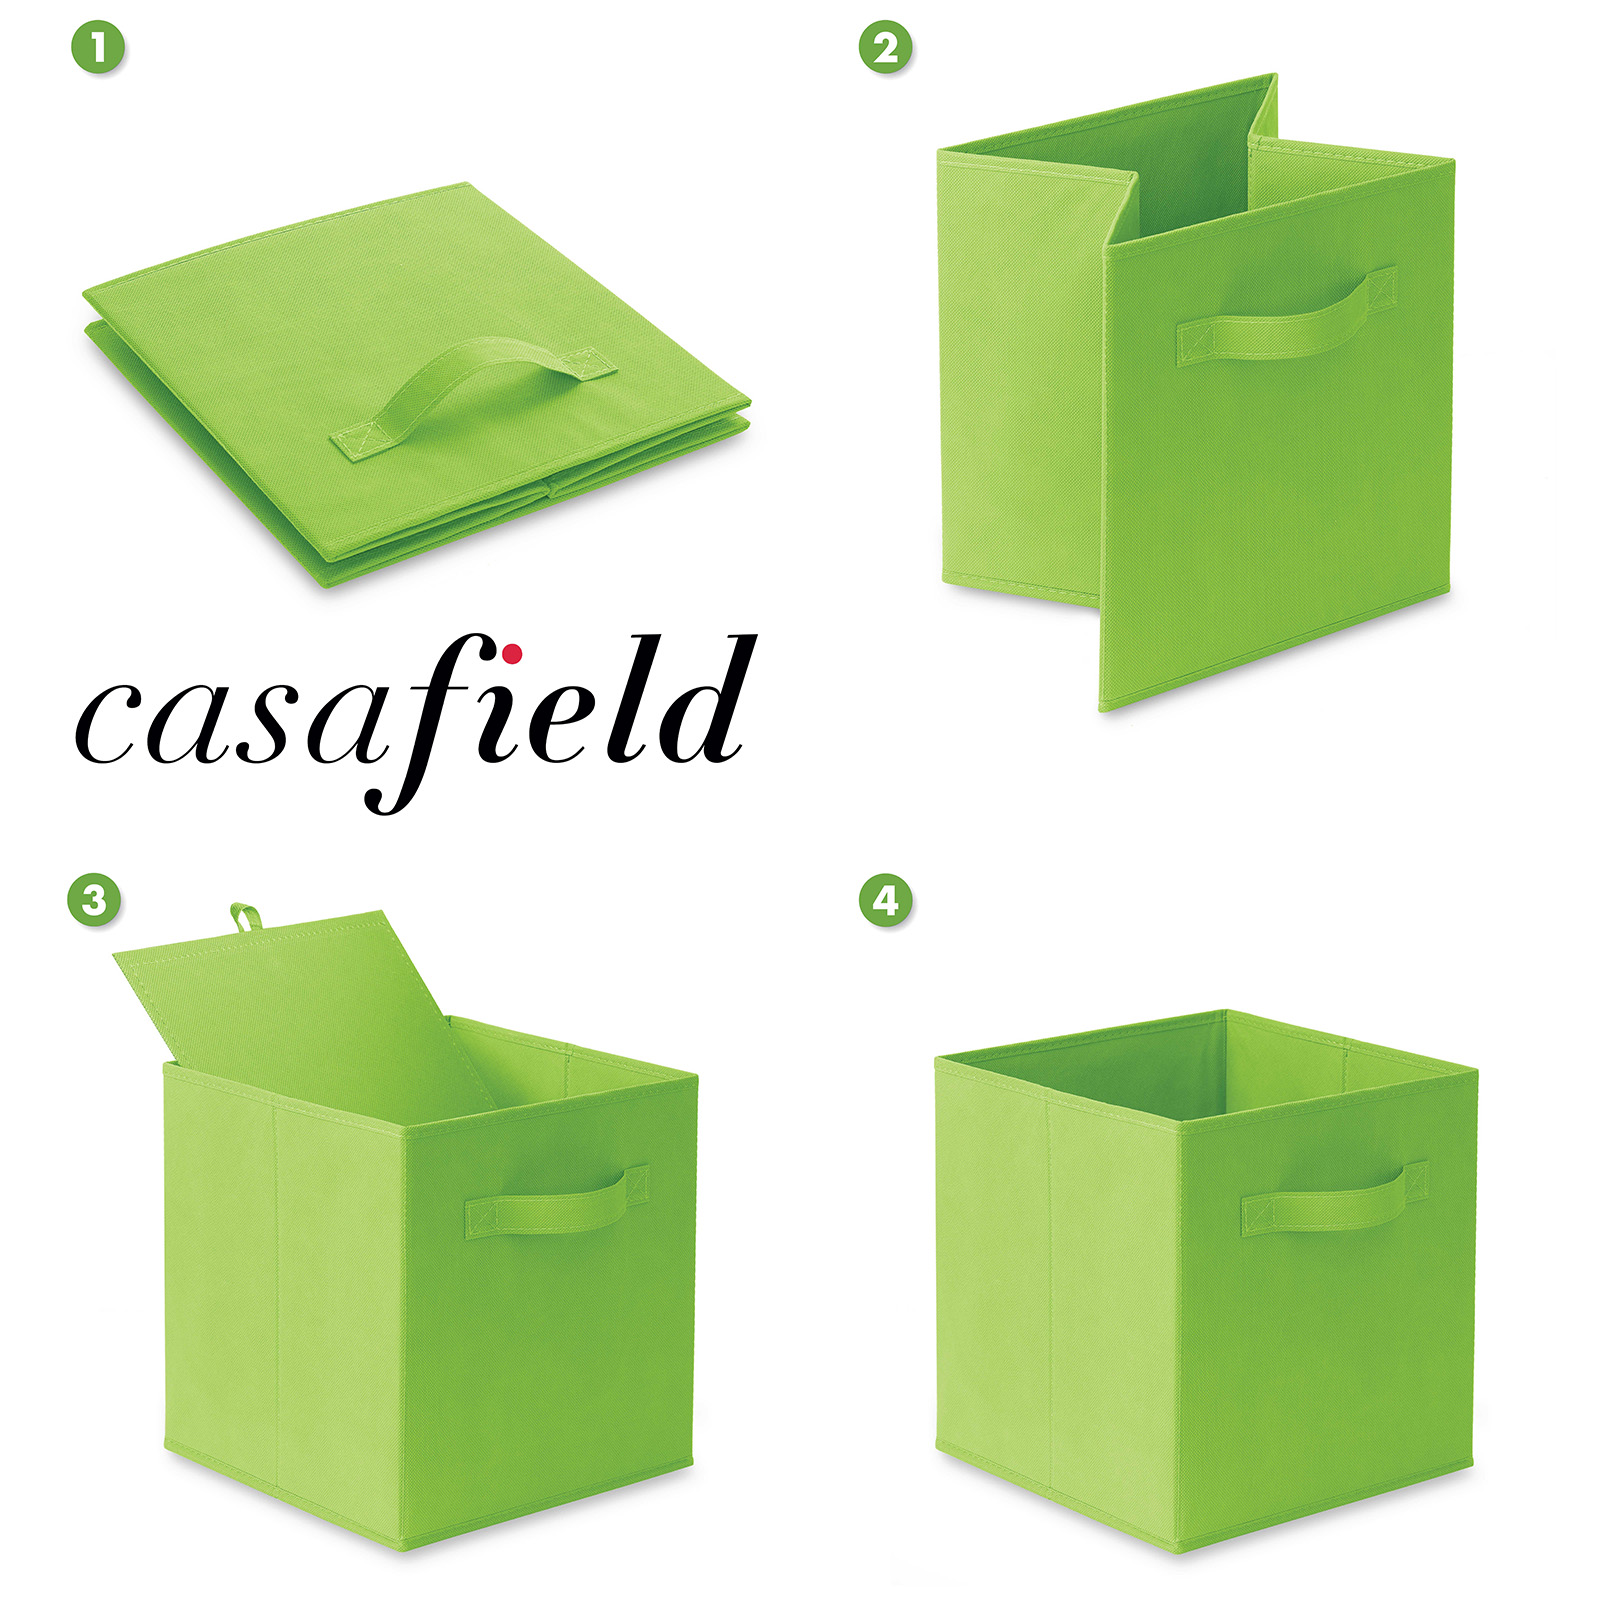 6-Collapsible-Foldable-Cloth-Fabric-Cubby-Cube-Storage-Bins-Baskets-for-Shelves thumbnail 49